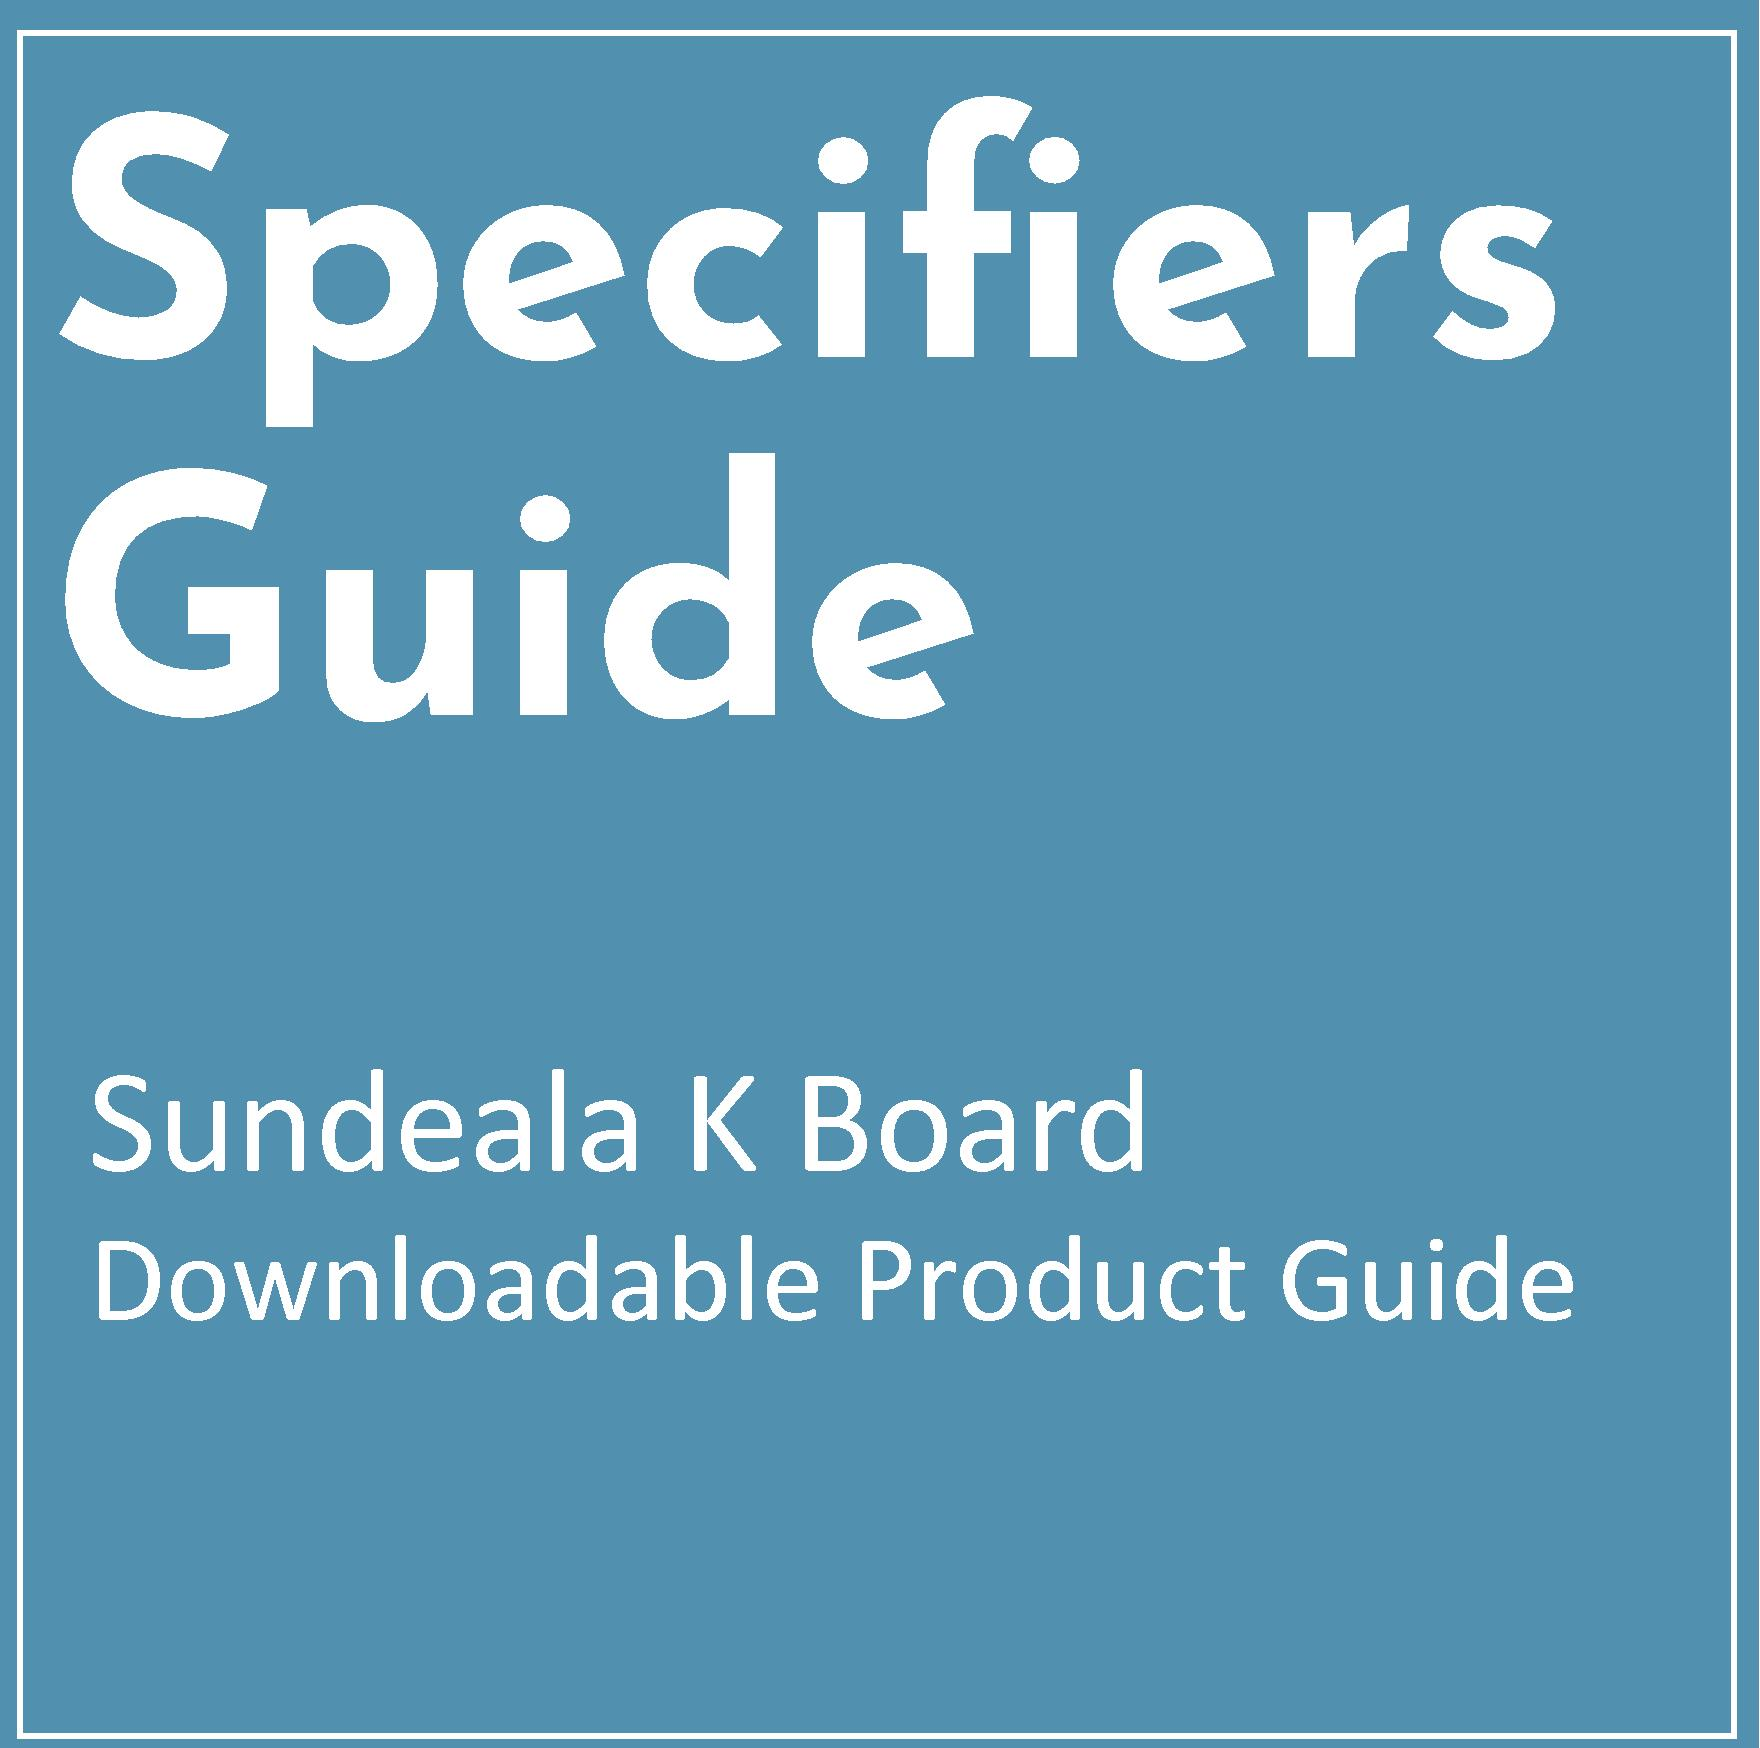 Specifiers Guide for Sundeala K Board